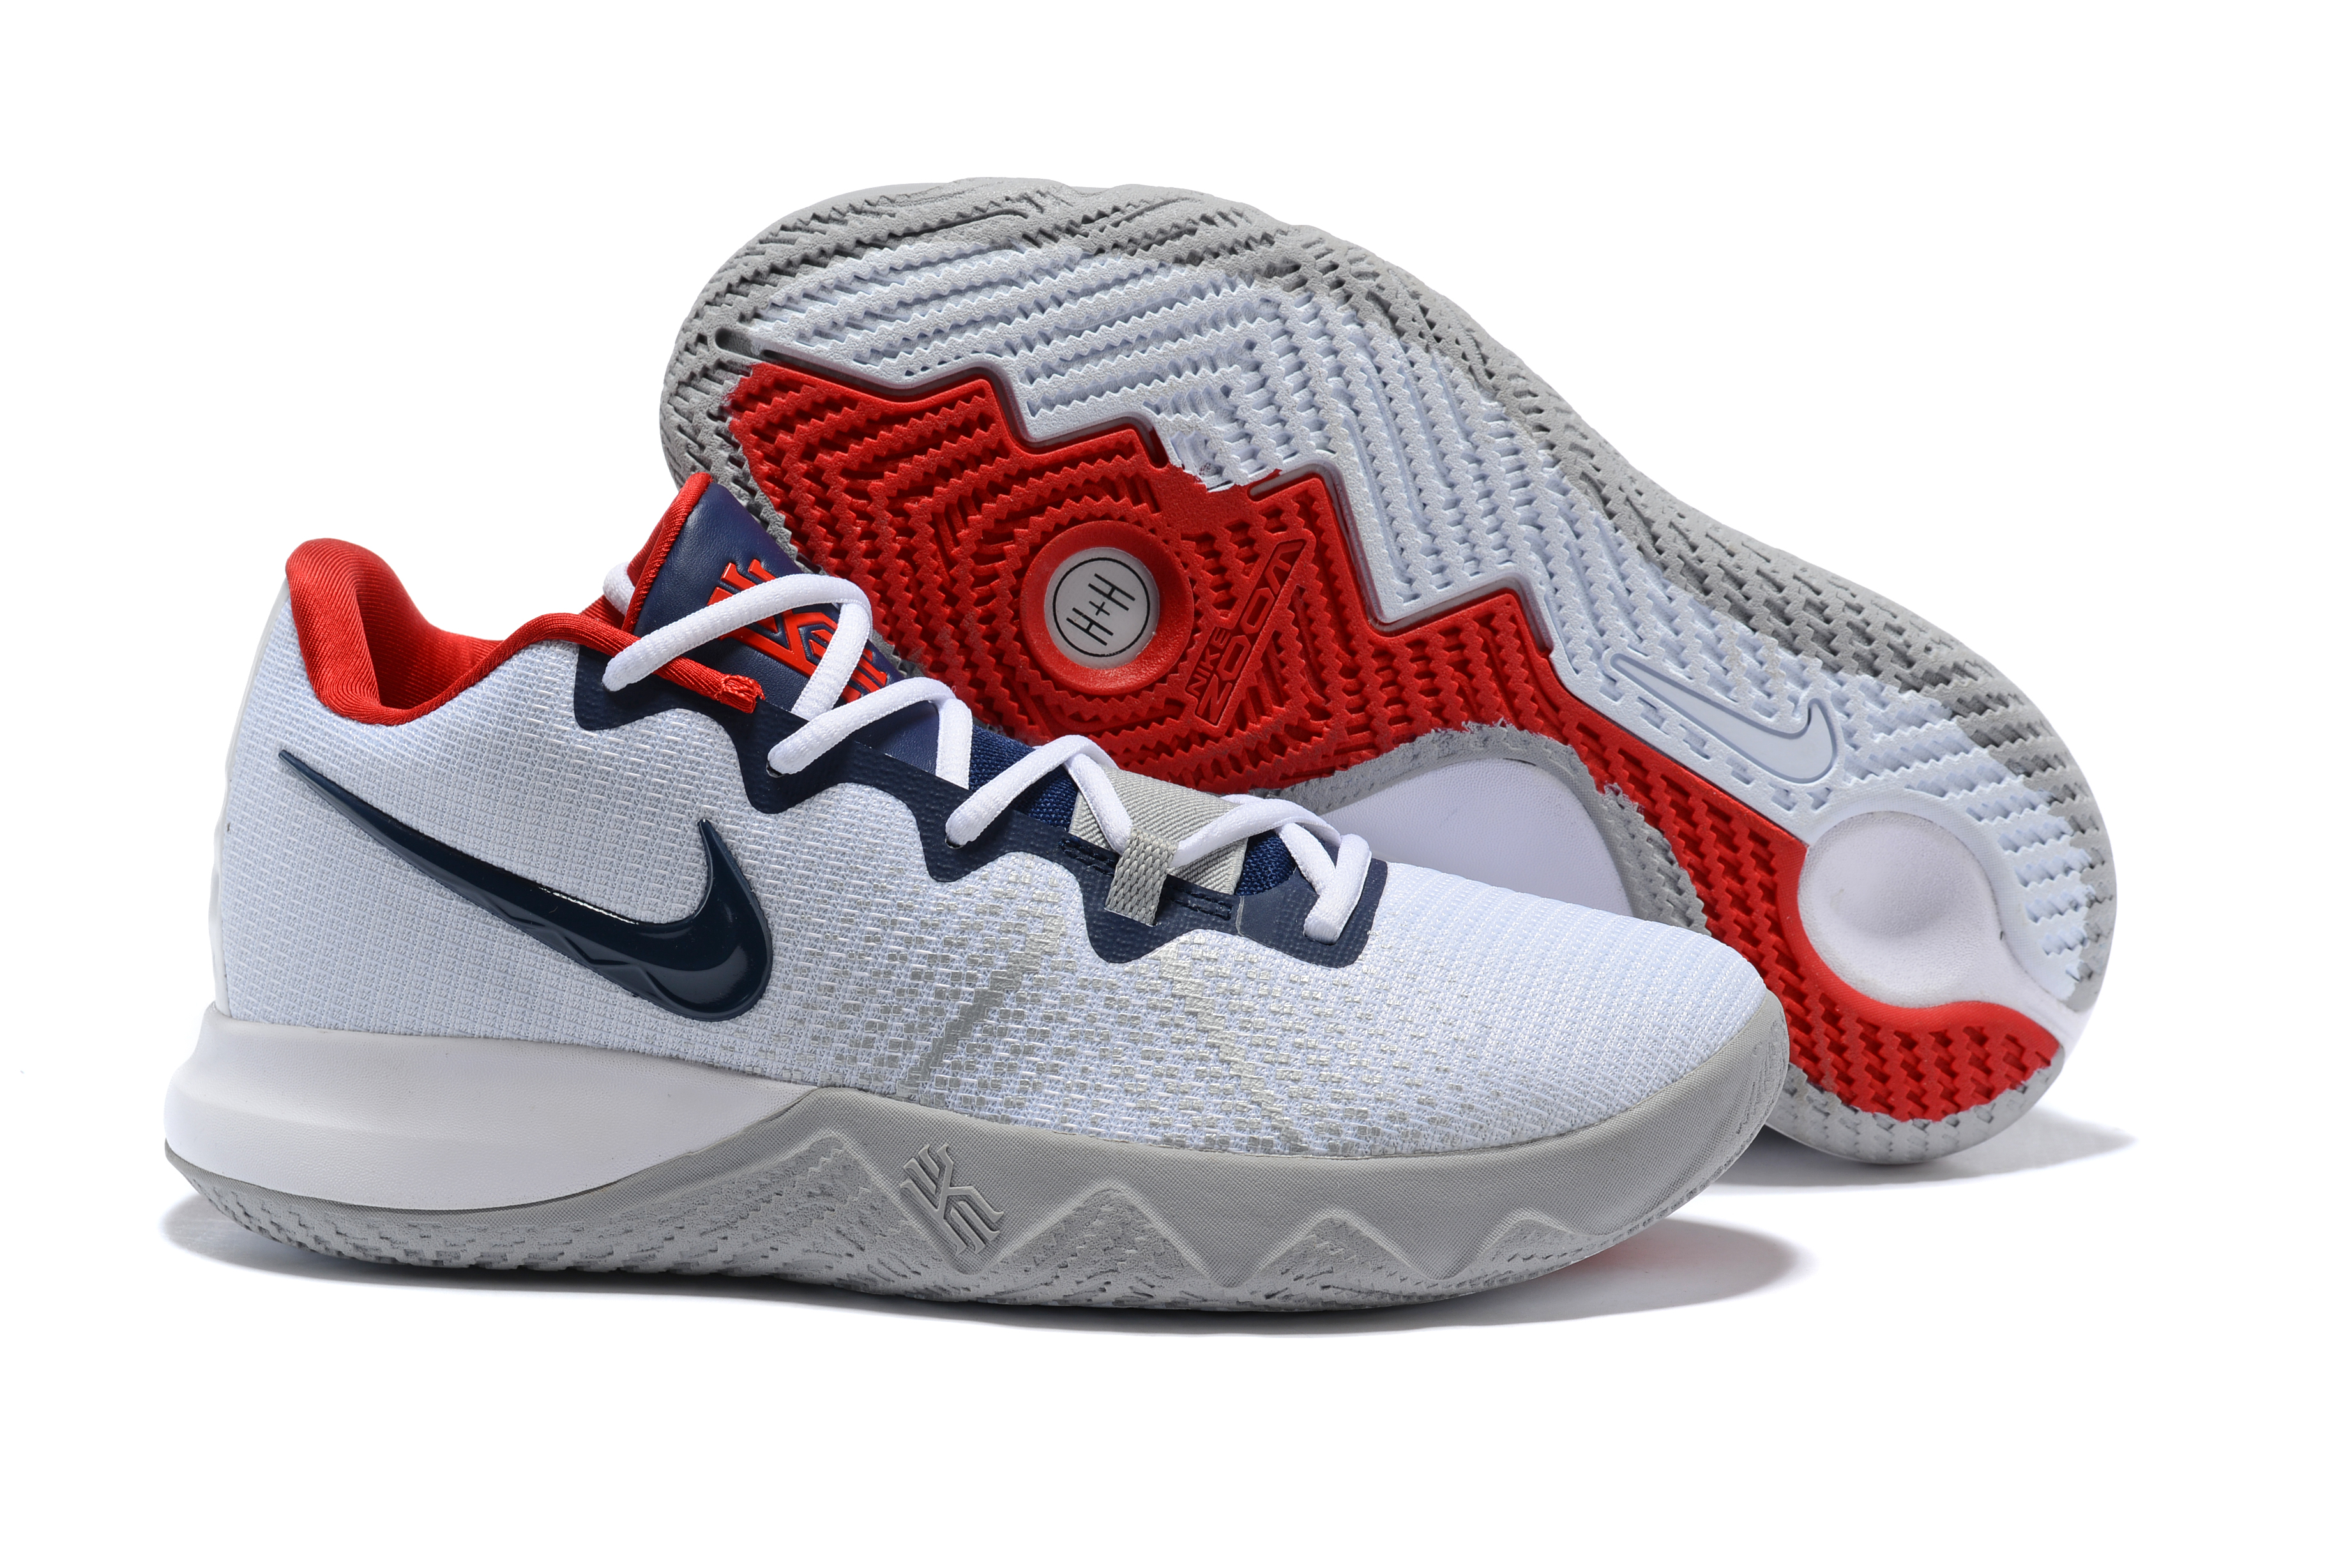 Nike Kyrie Flytrap White Deep Blue Red Shoes